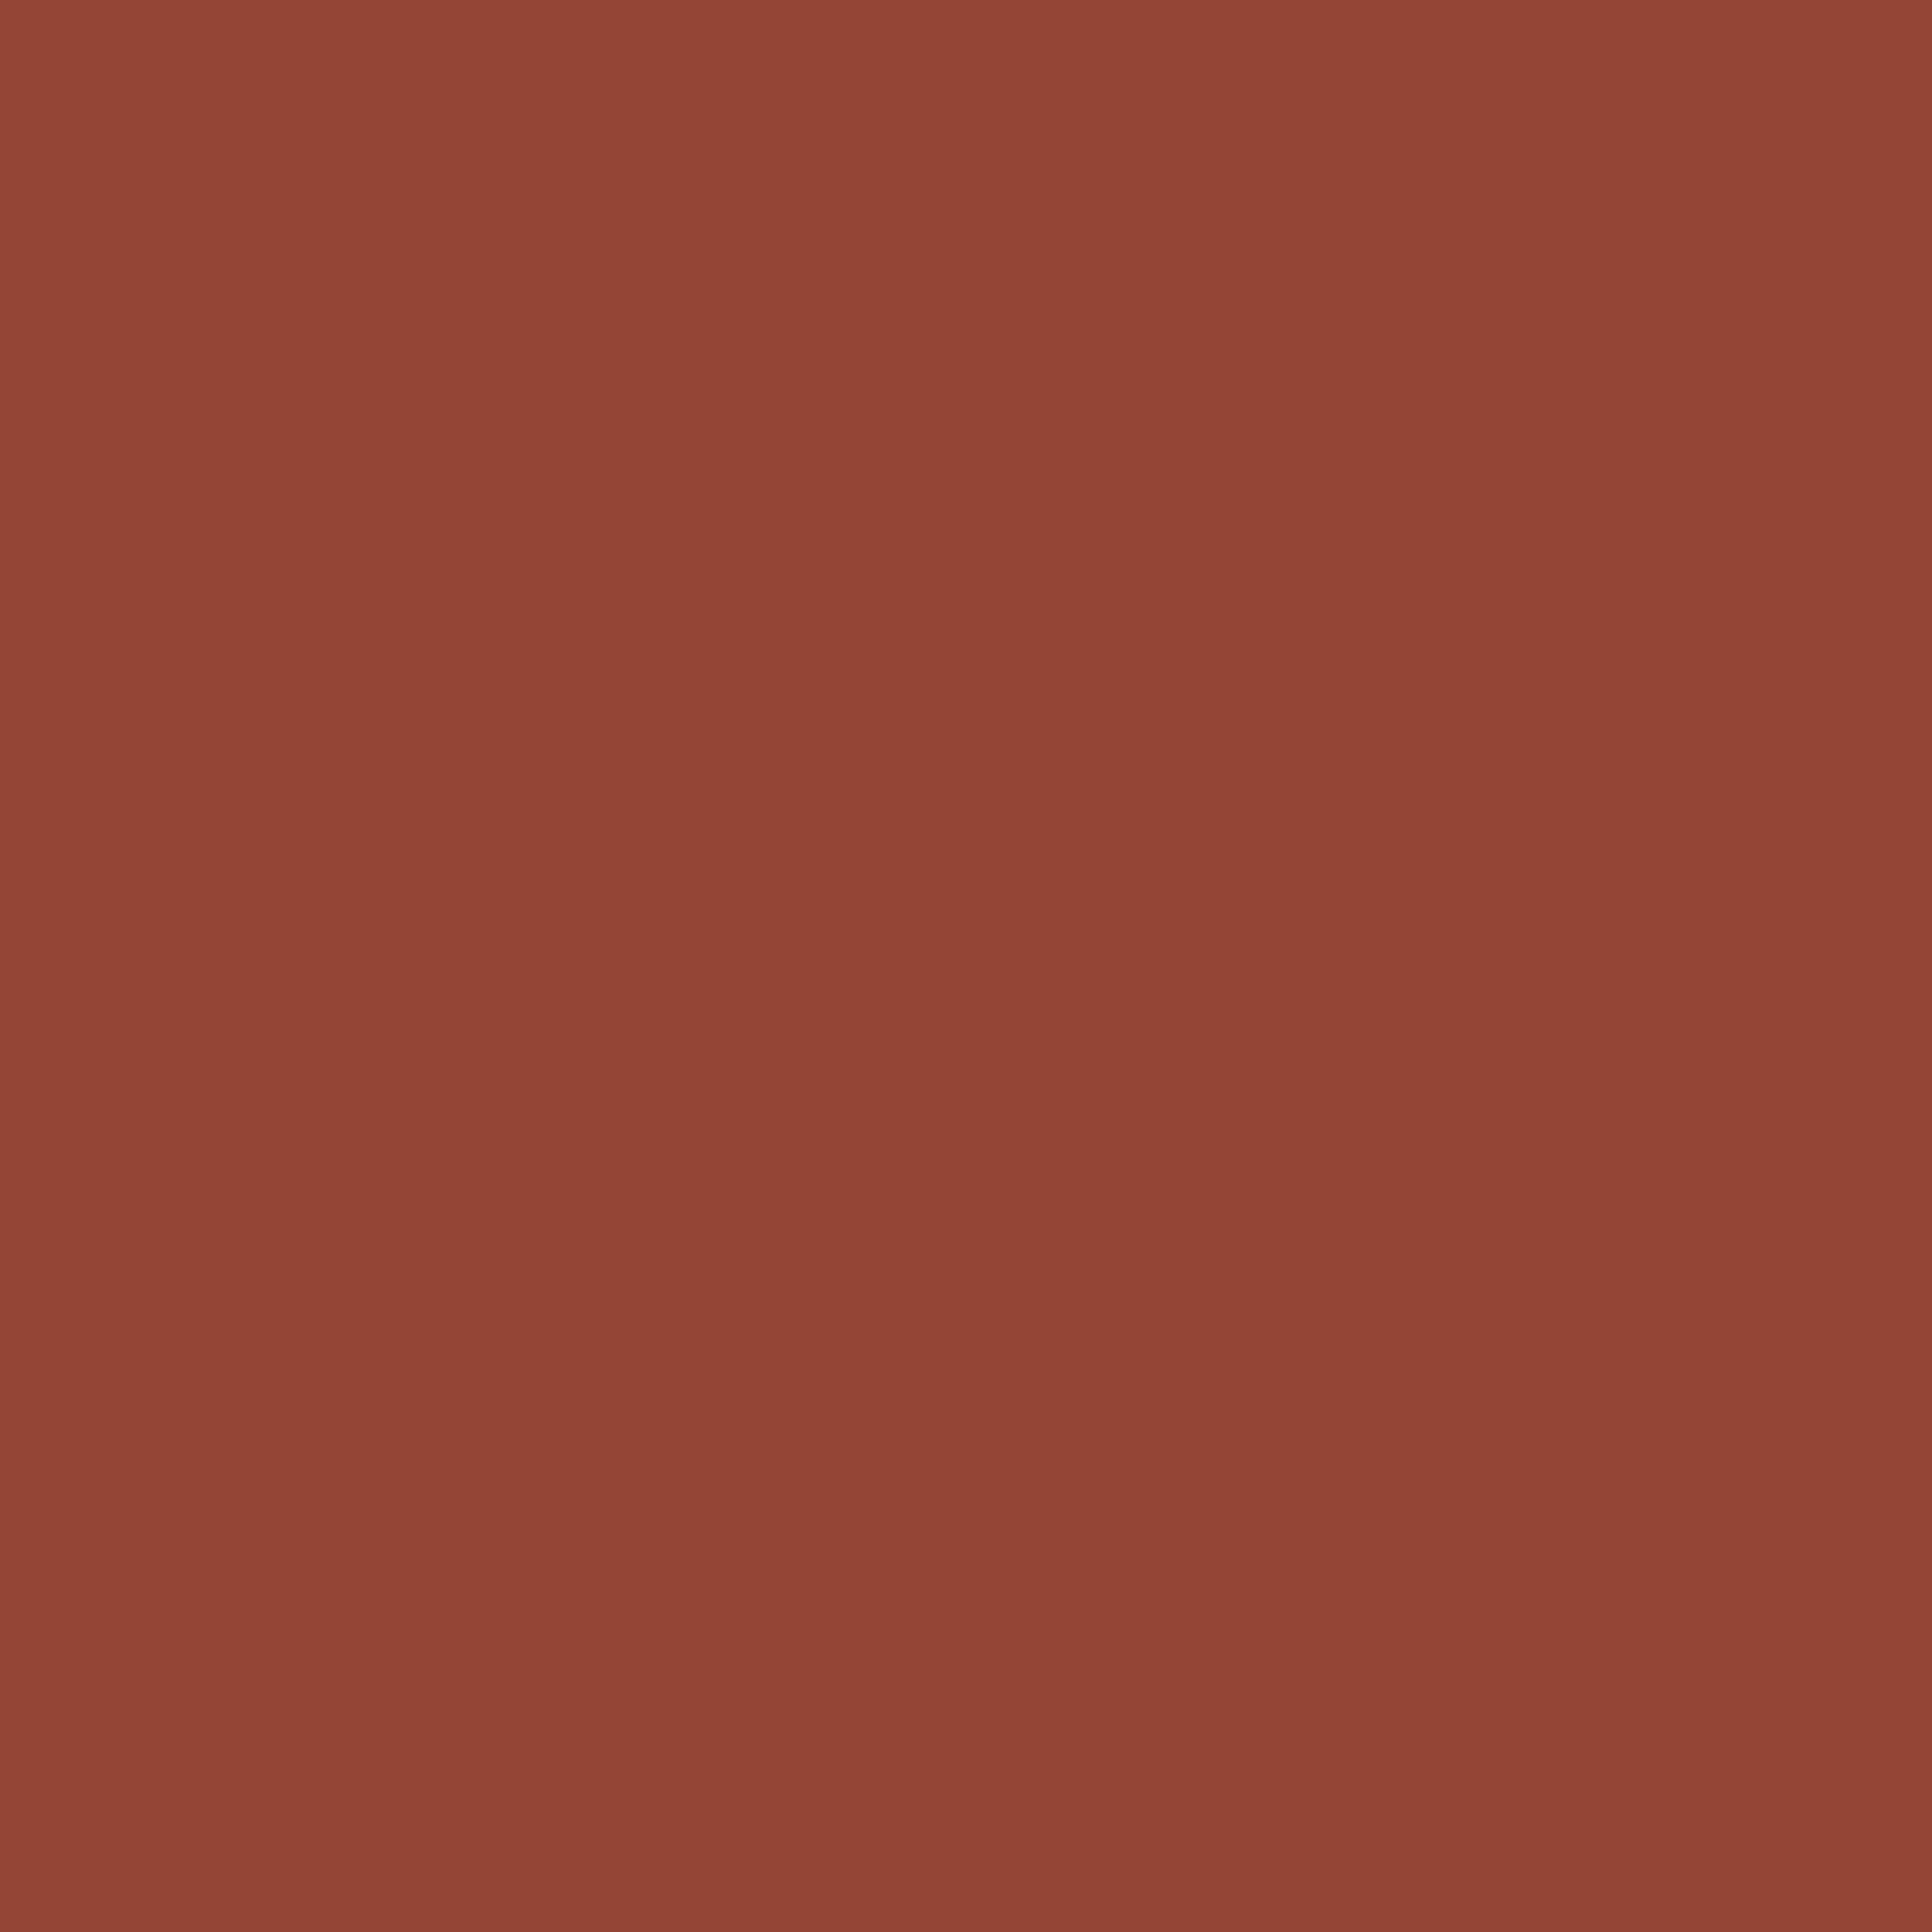 2048x2048 Chestnut Solid Color Background